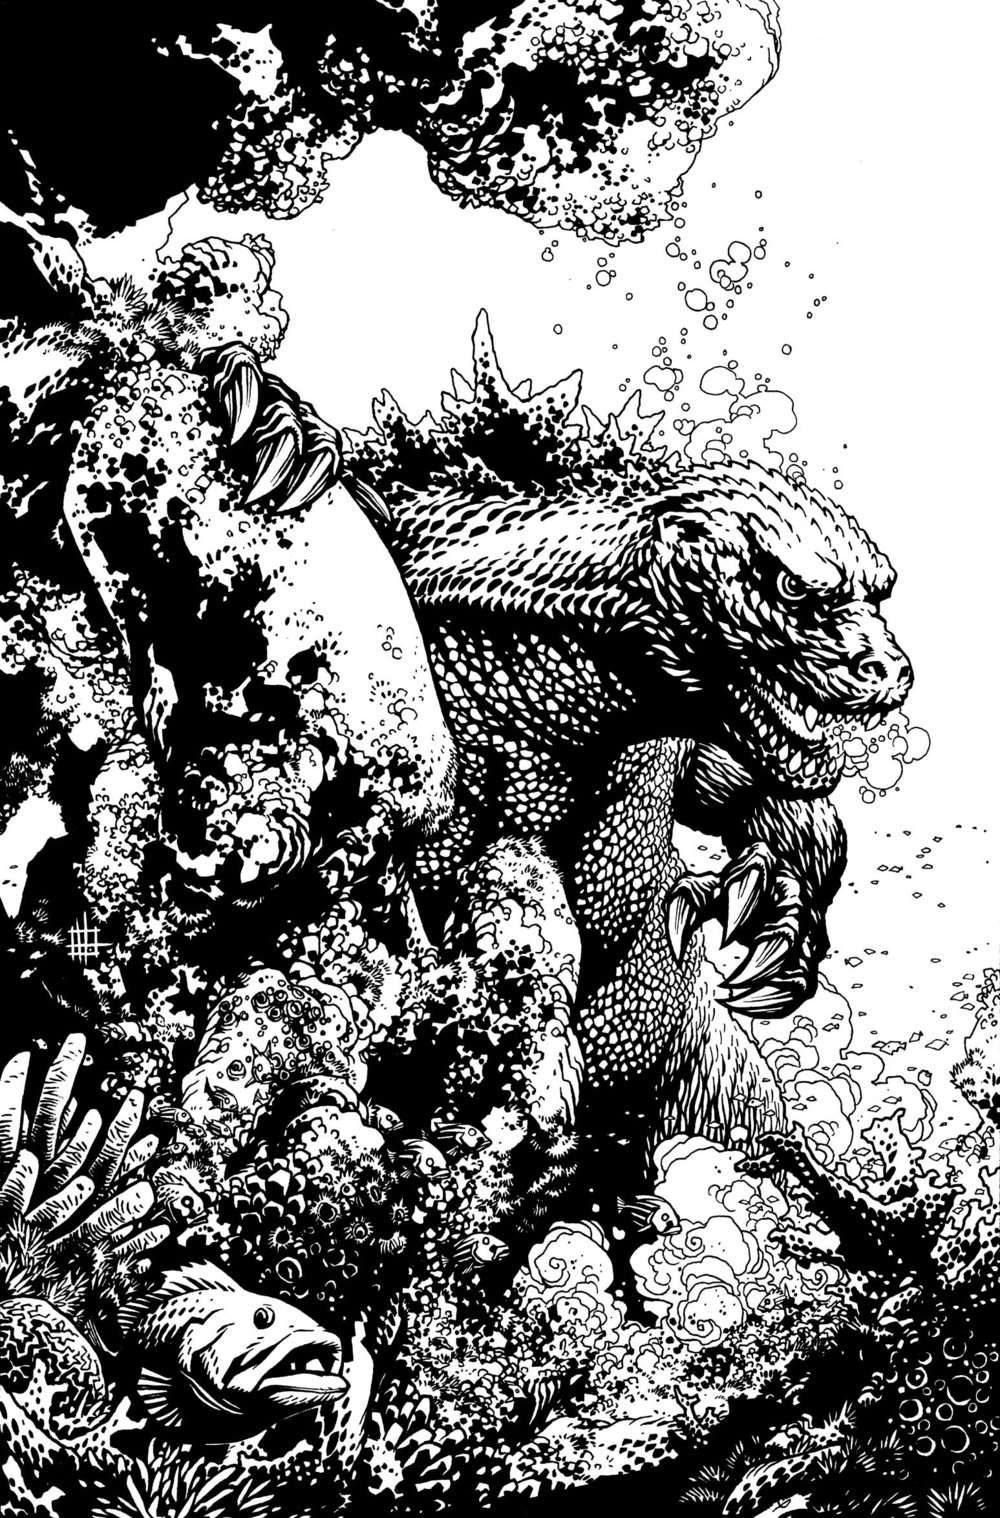 Godzilla Cover 1 low res.jpg